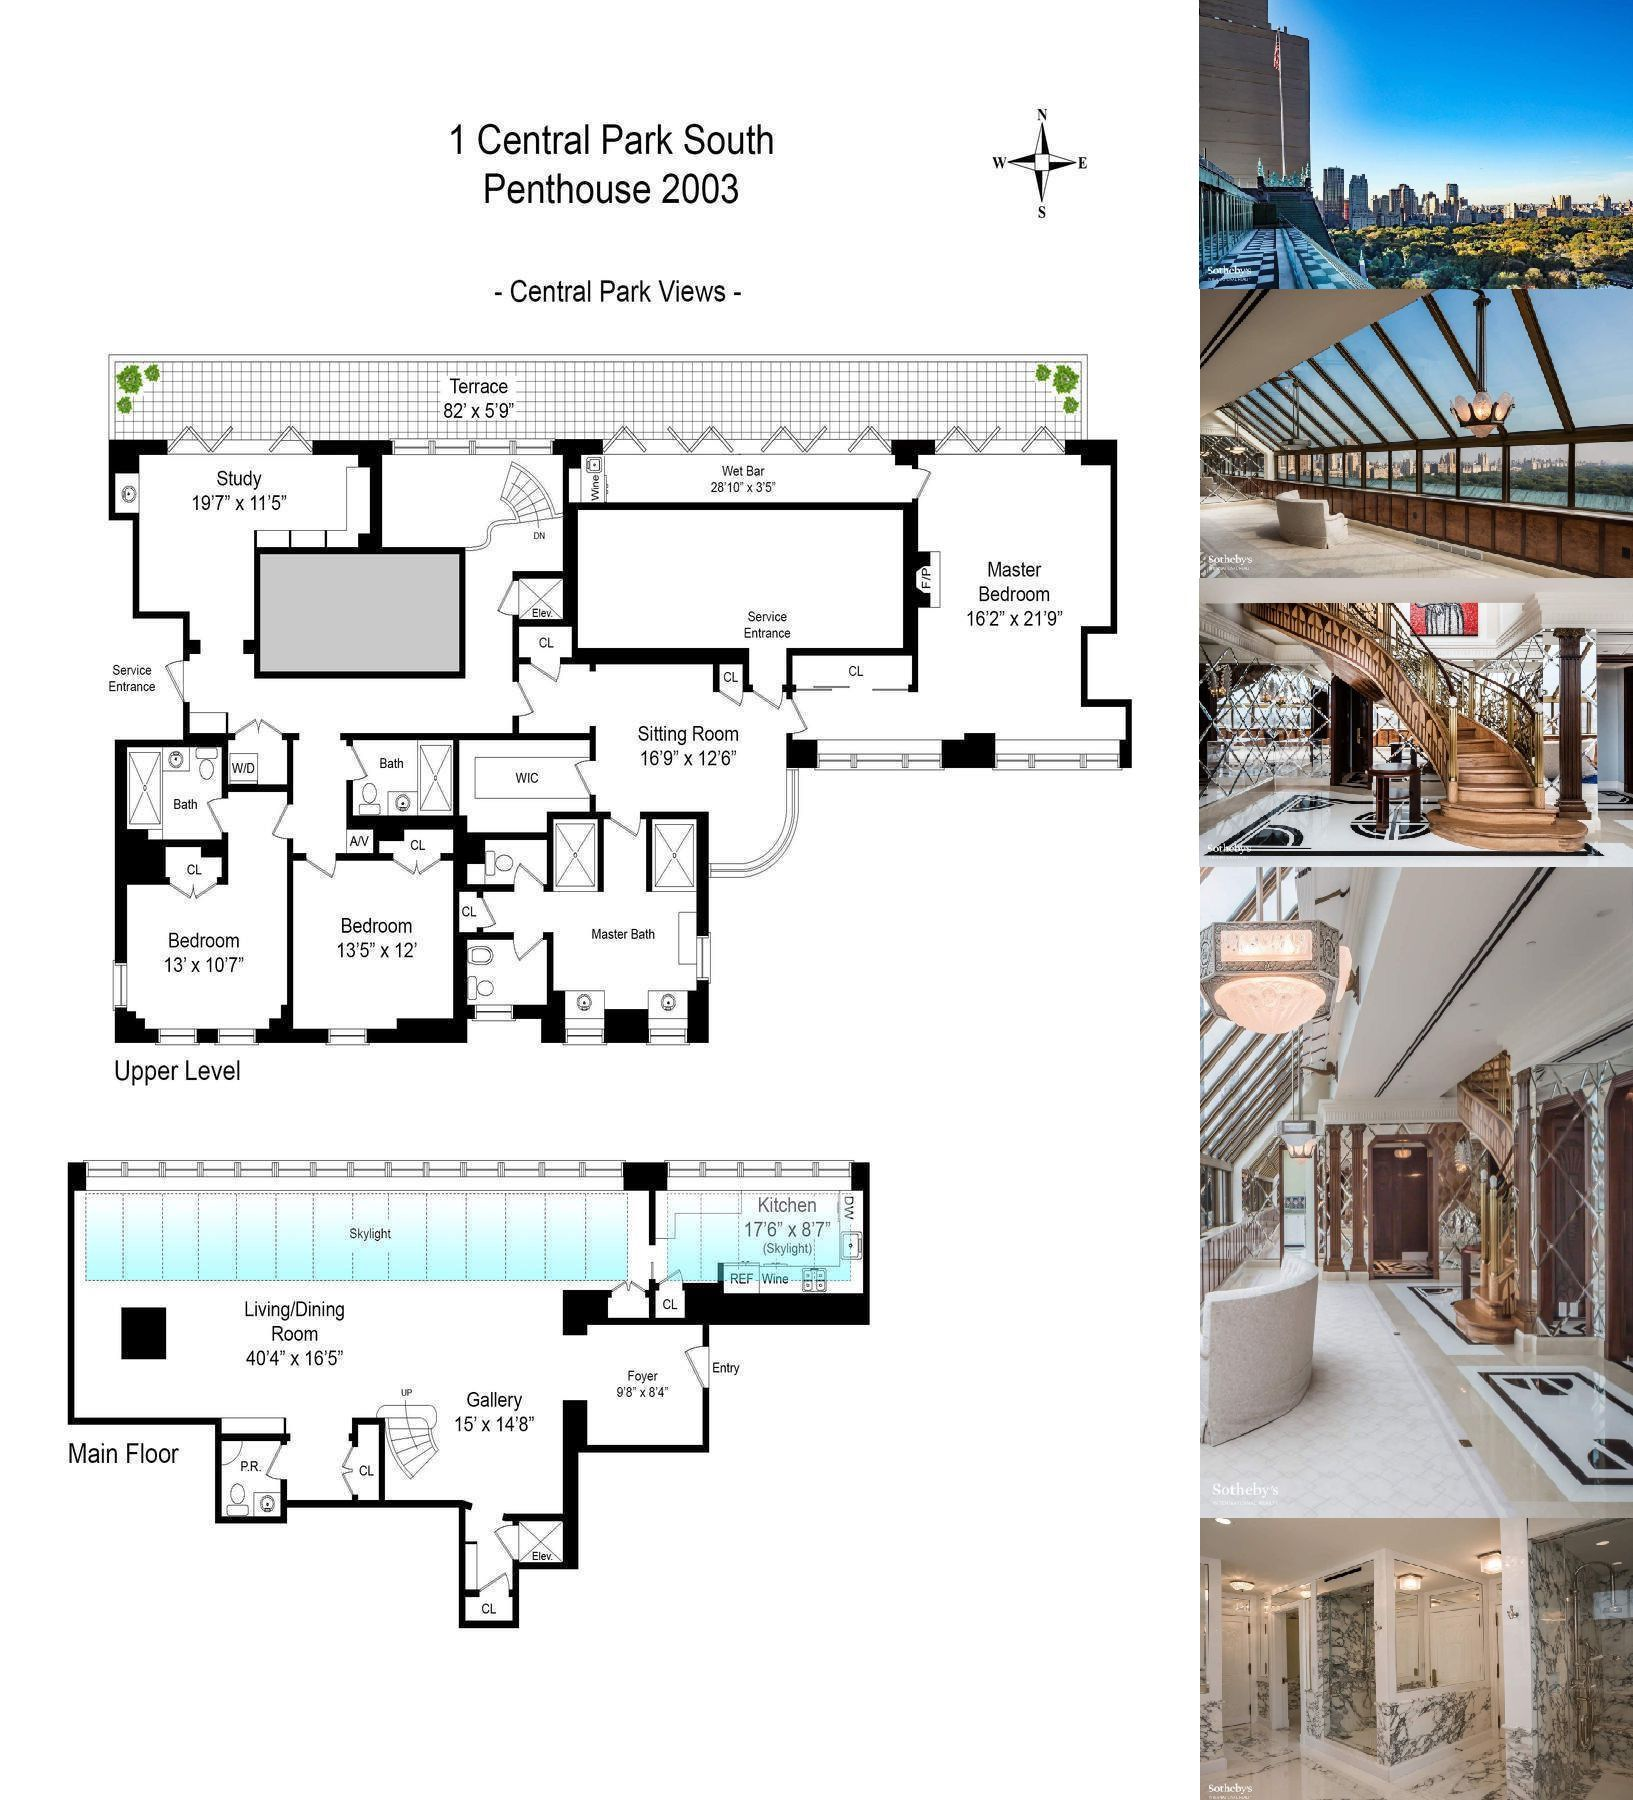 Central Park New York Condos: 1 Central Park South PH-2003 Is A Sale Unit In Central